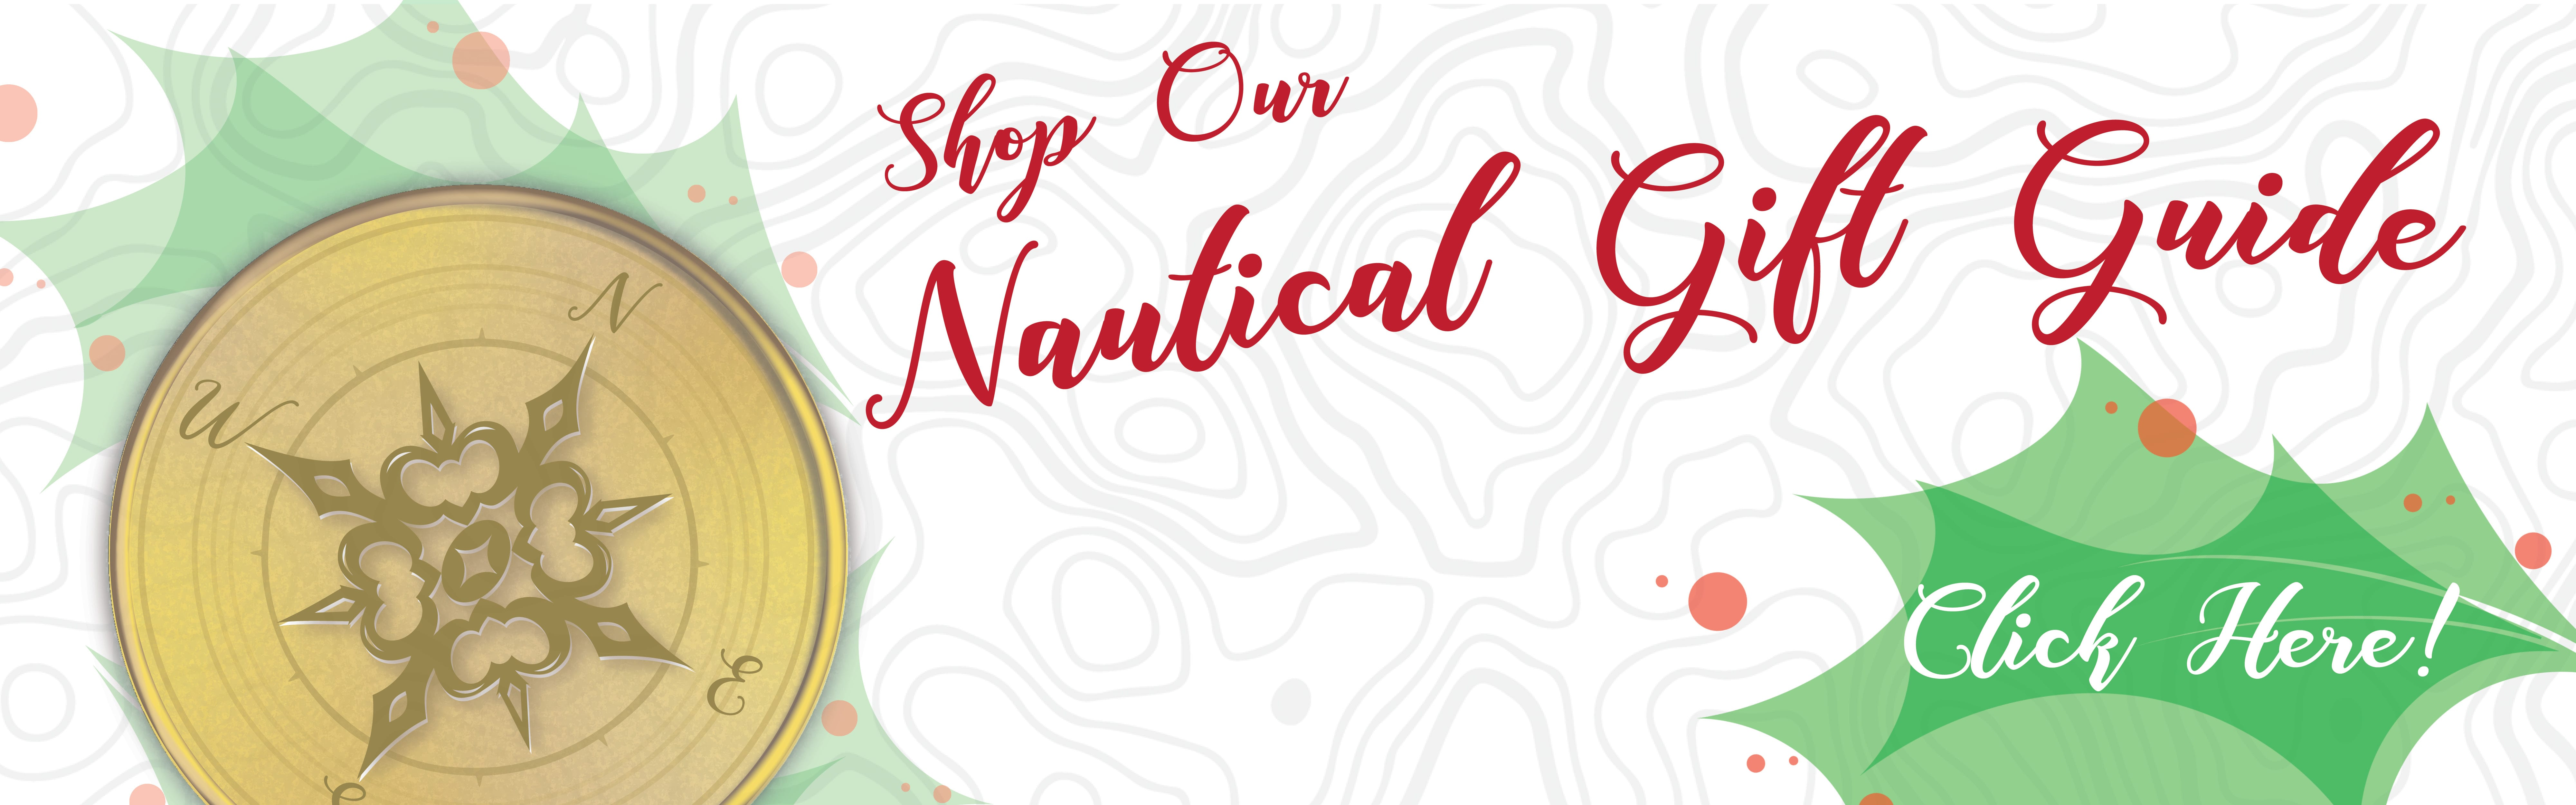 XMAS19 Nautical Gift Guide